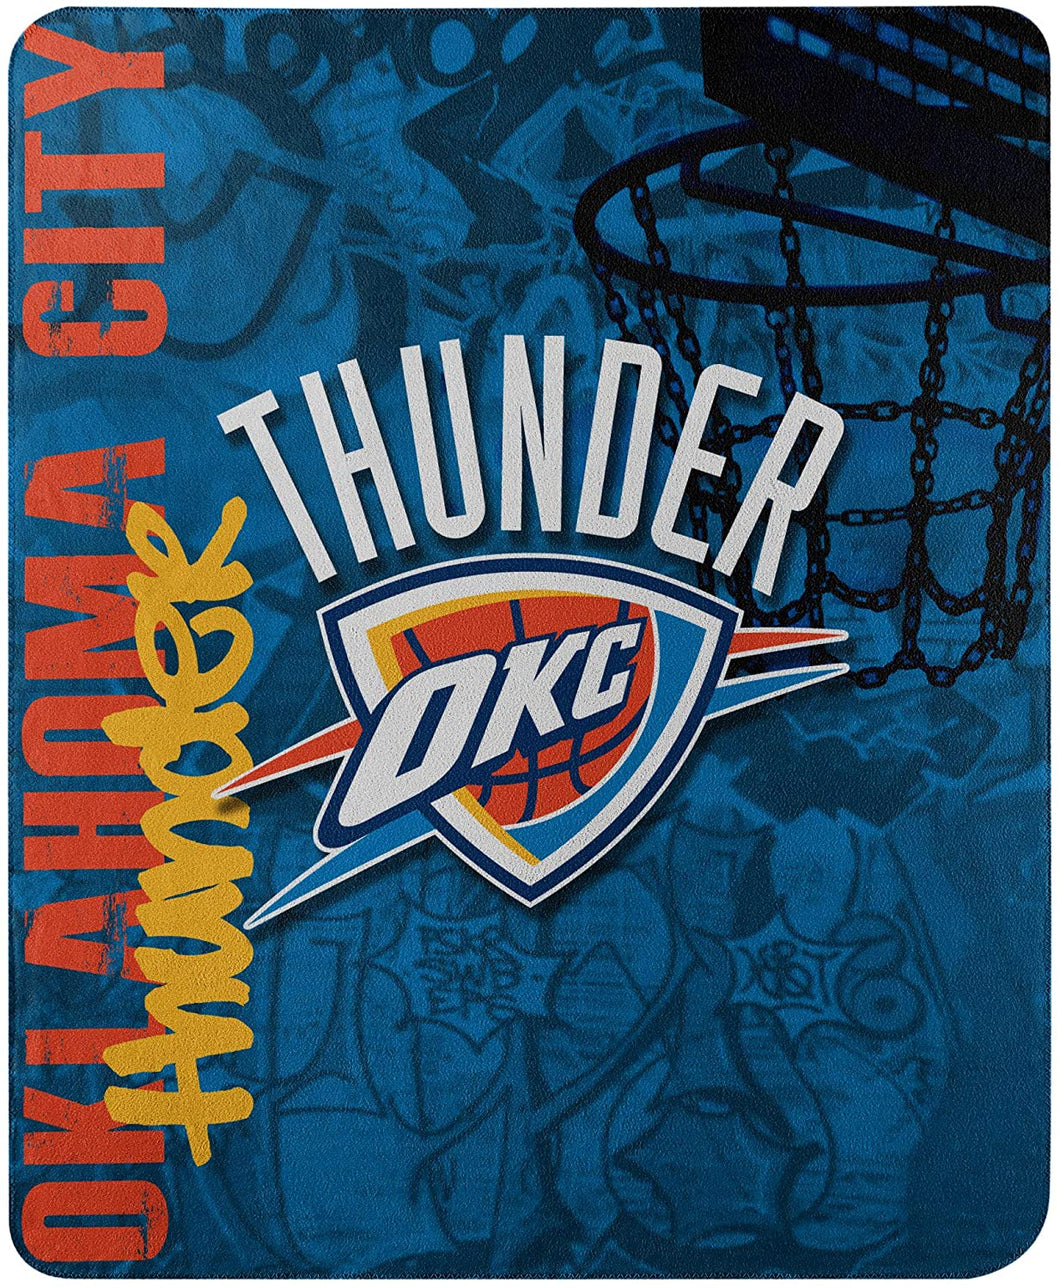 Thunder Printed Fleece Throw, 50-inch by 60-inch